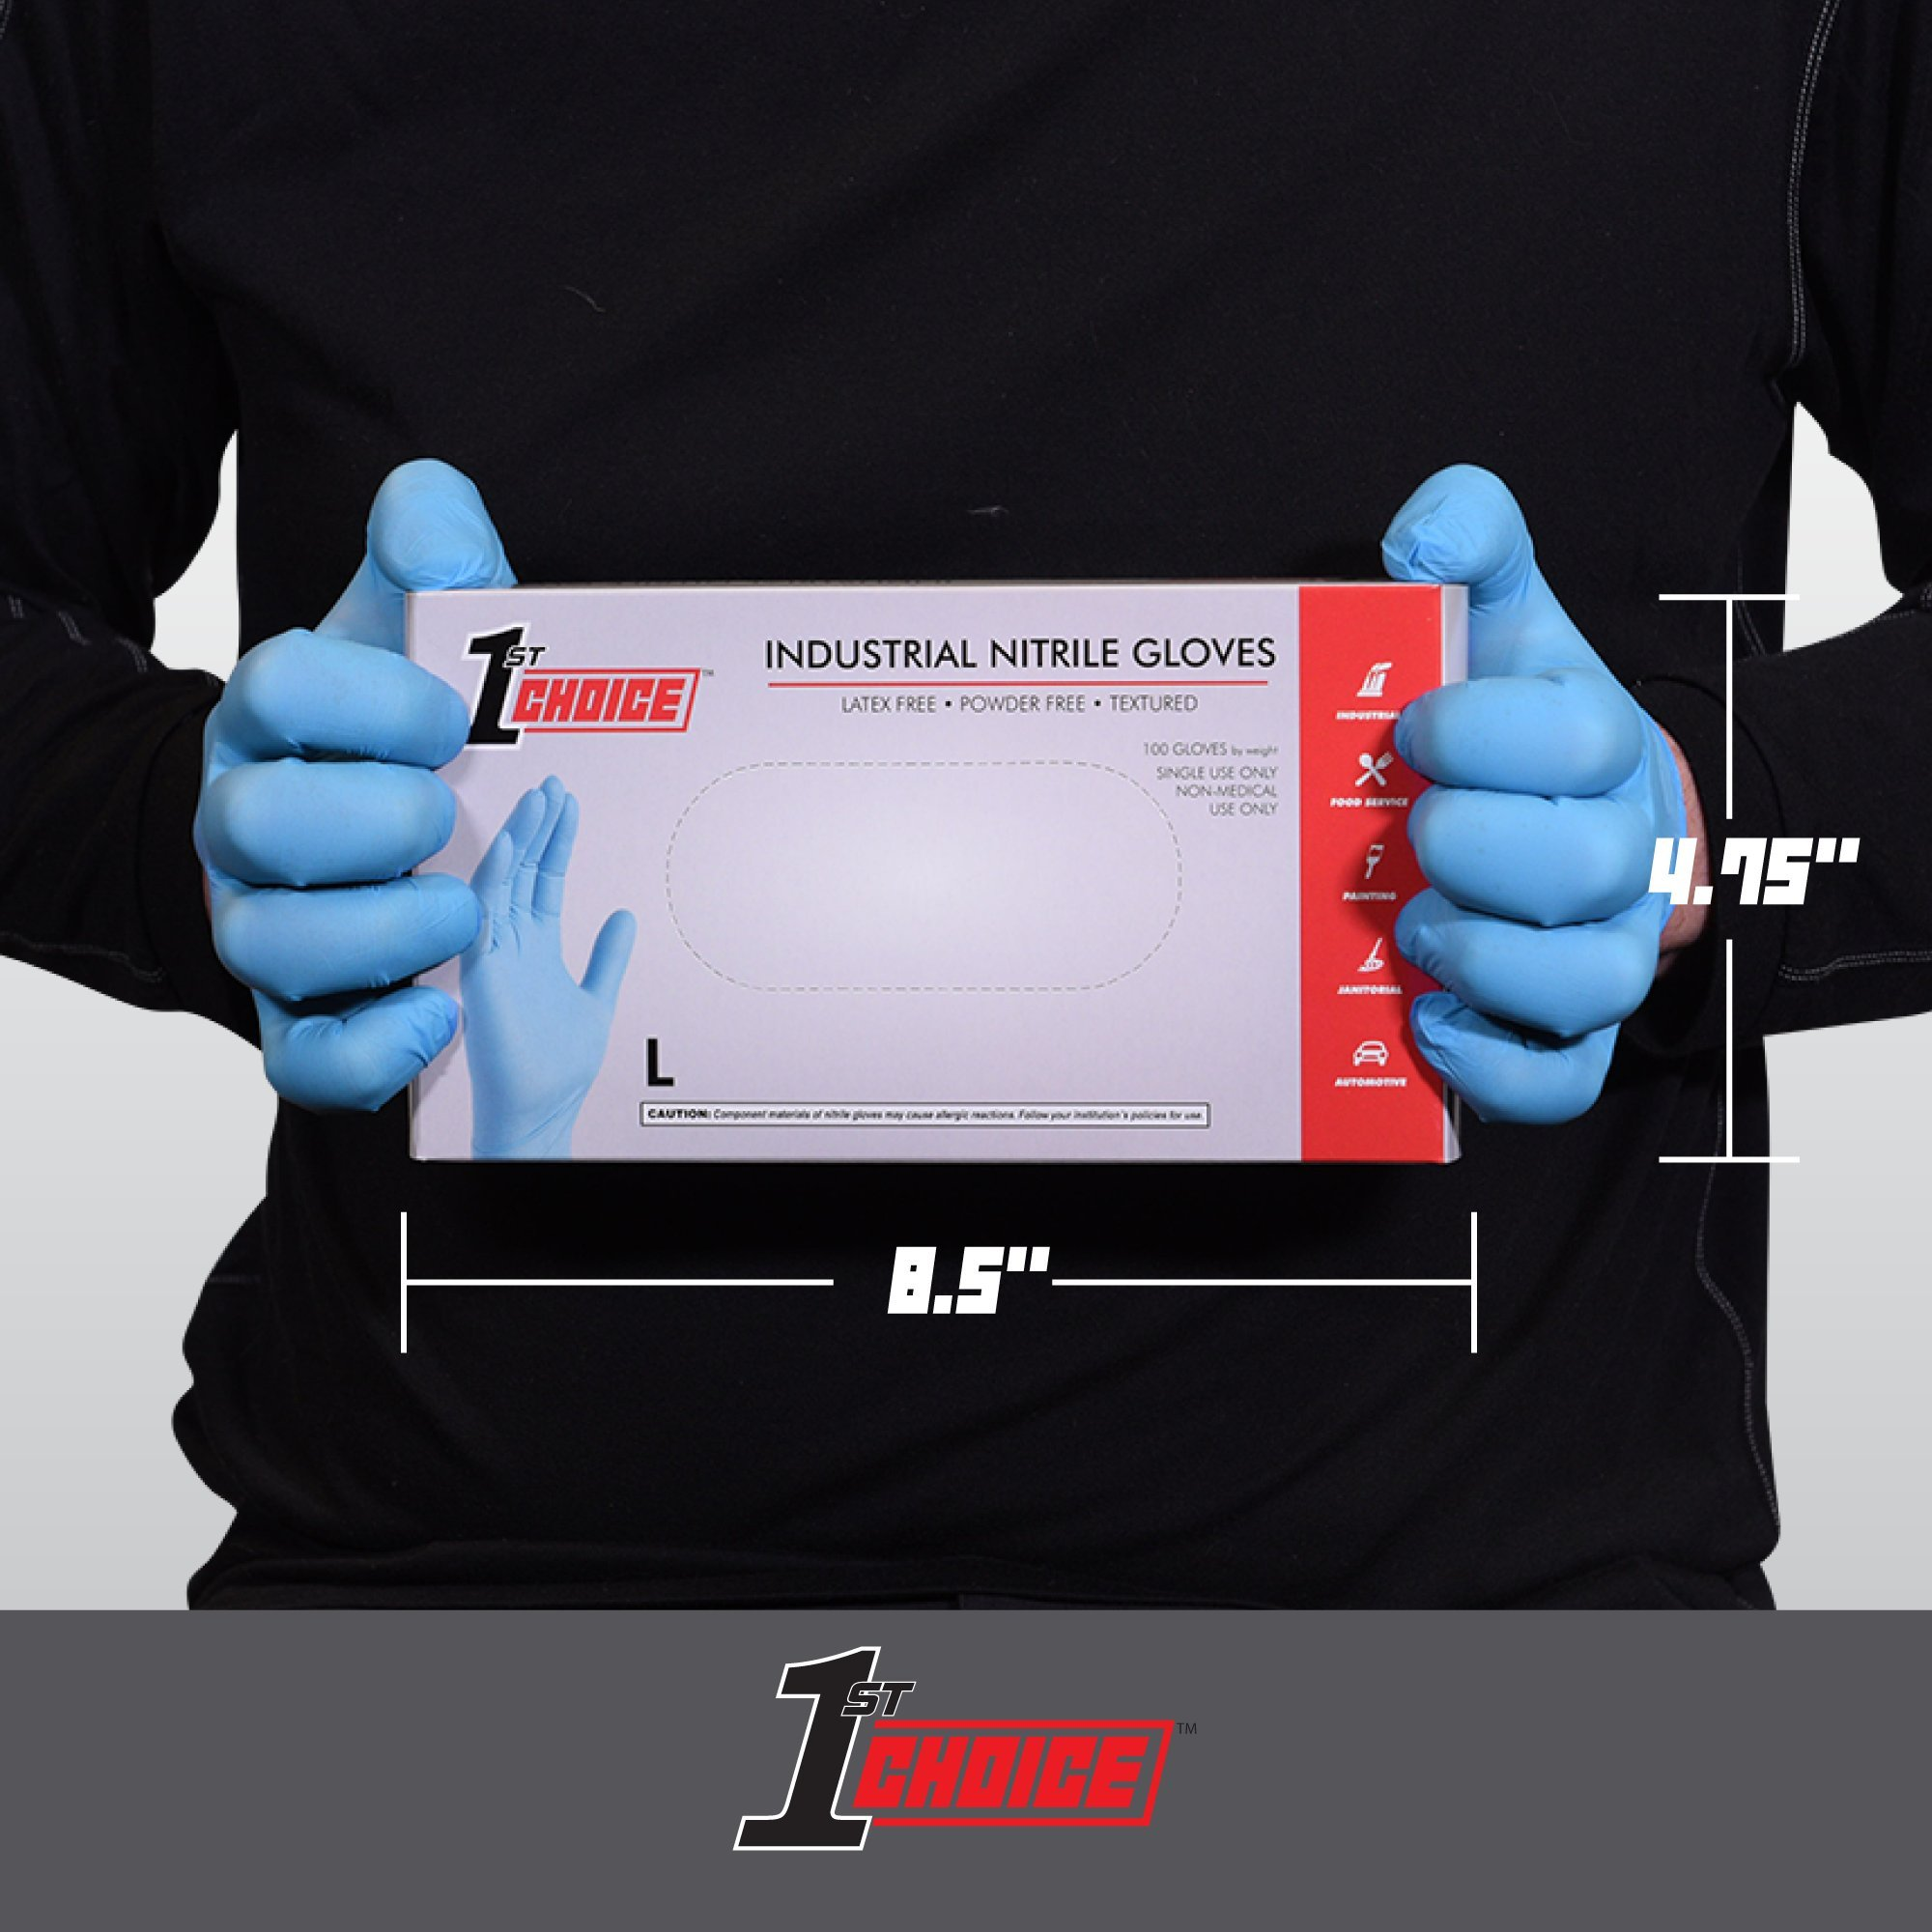 1st Choice Blue Nitrile 3 Mil Thick Disposable Gloves, Medium, Case of 1000 - Industrial Grade, Latex-Free by 1ST CHOICE (Image #4)